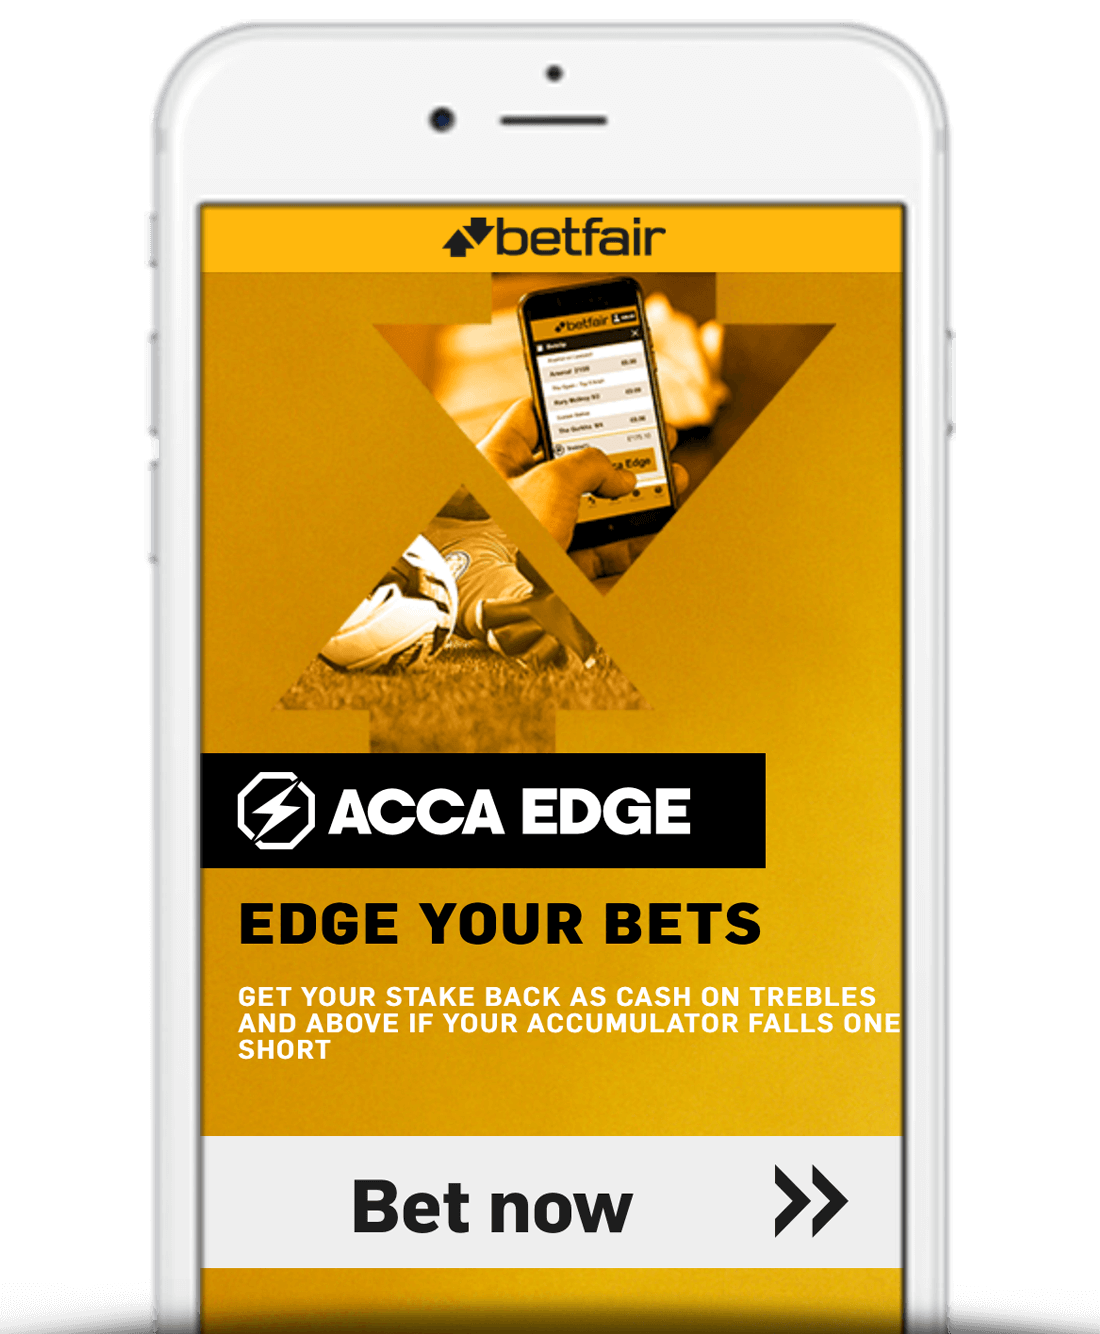 What Is Betfair Acca Edge?